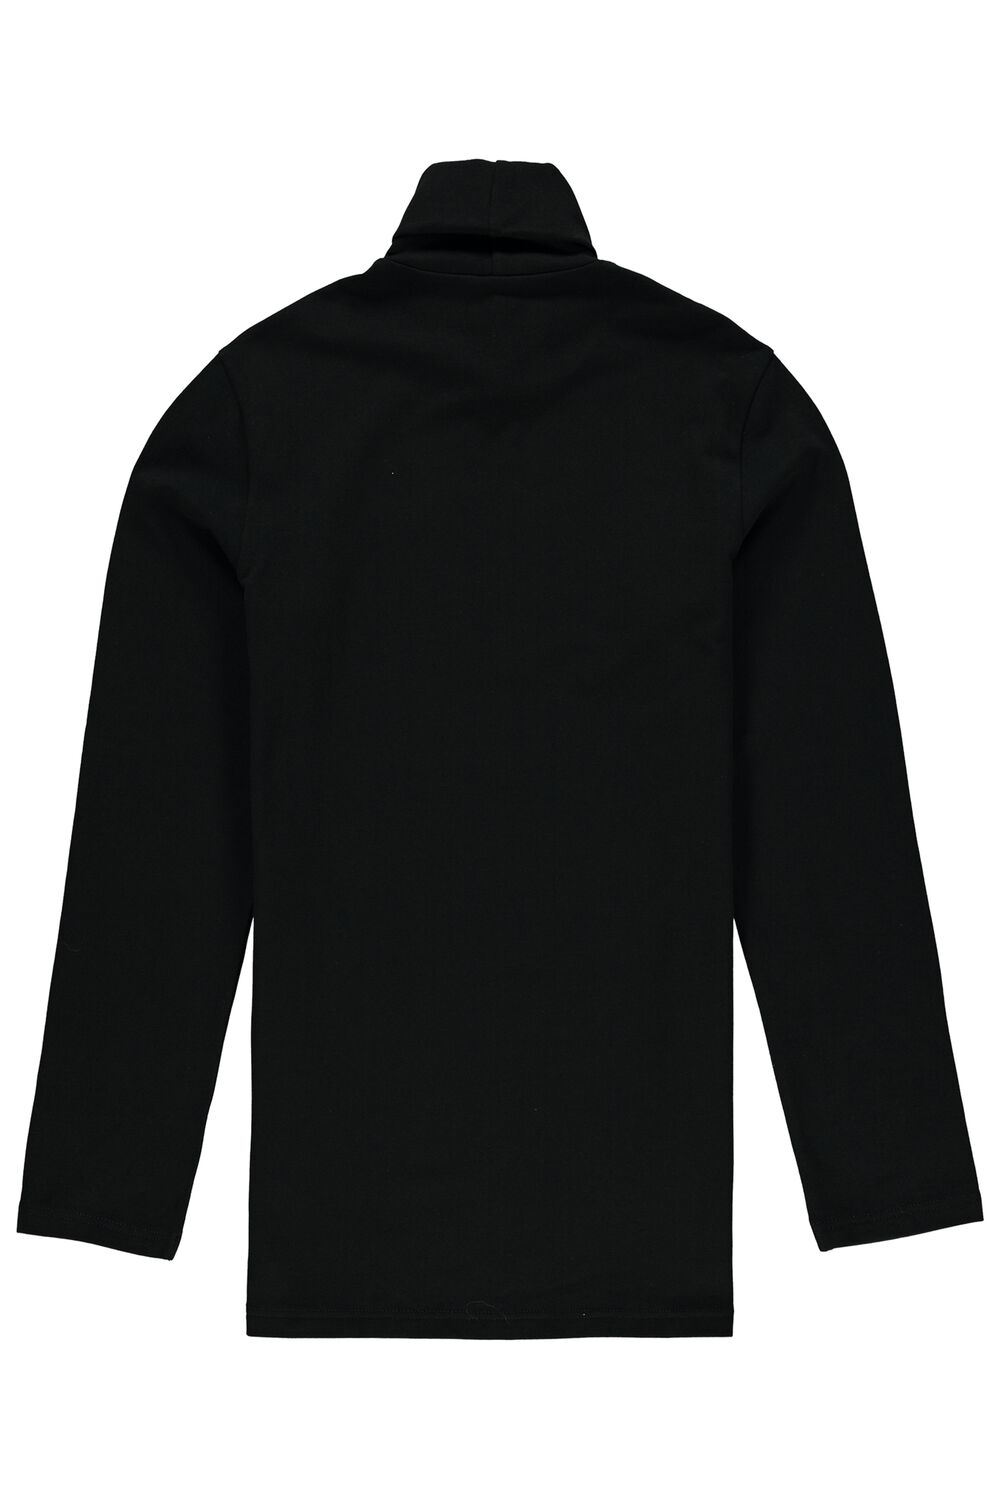 Long-Sleeve High-Neck Thermal Cotton Top